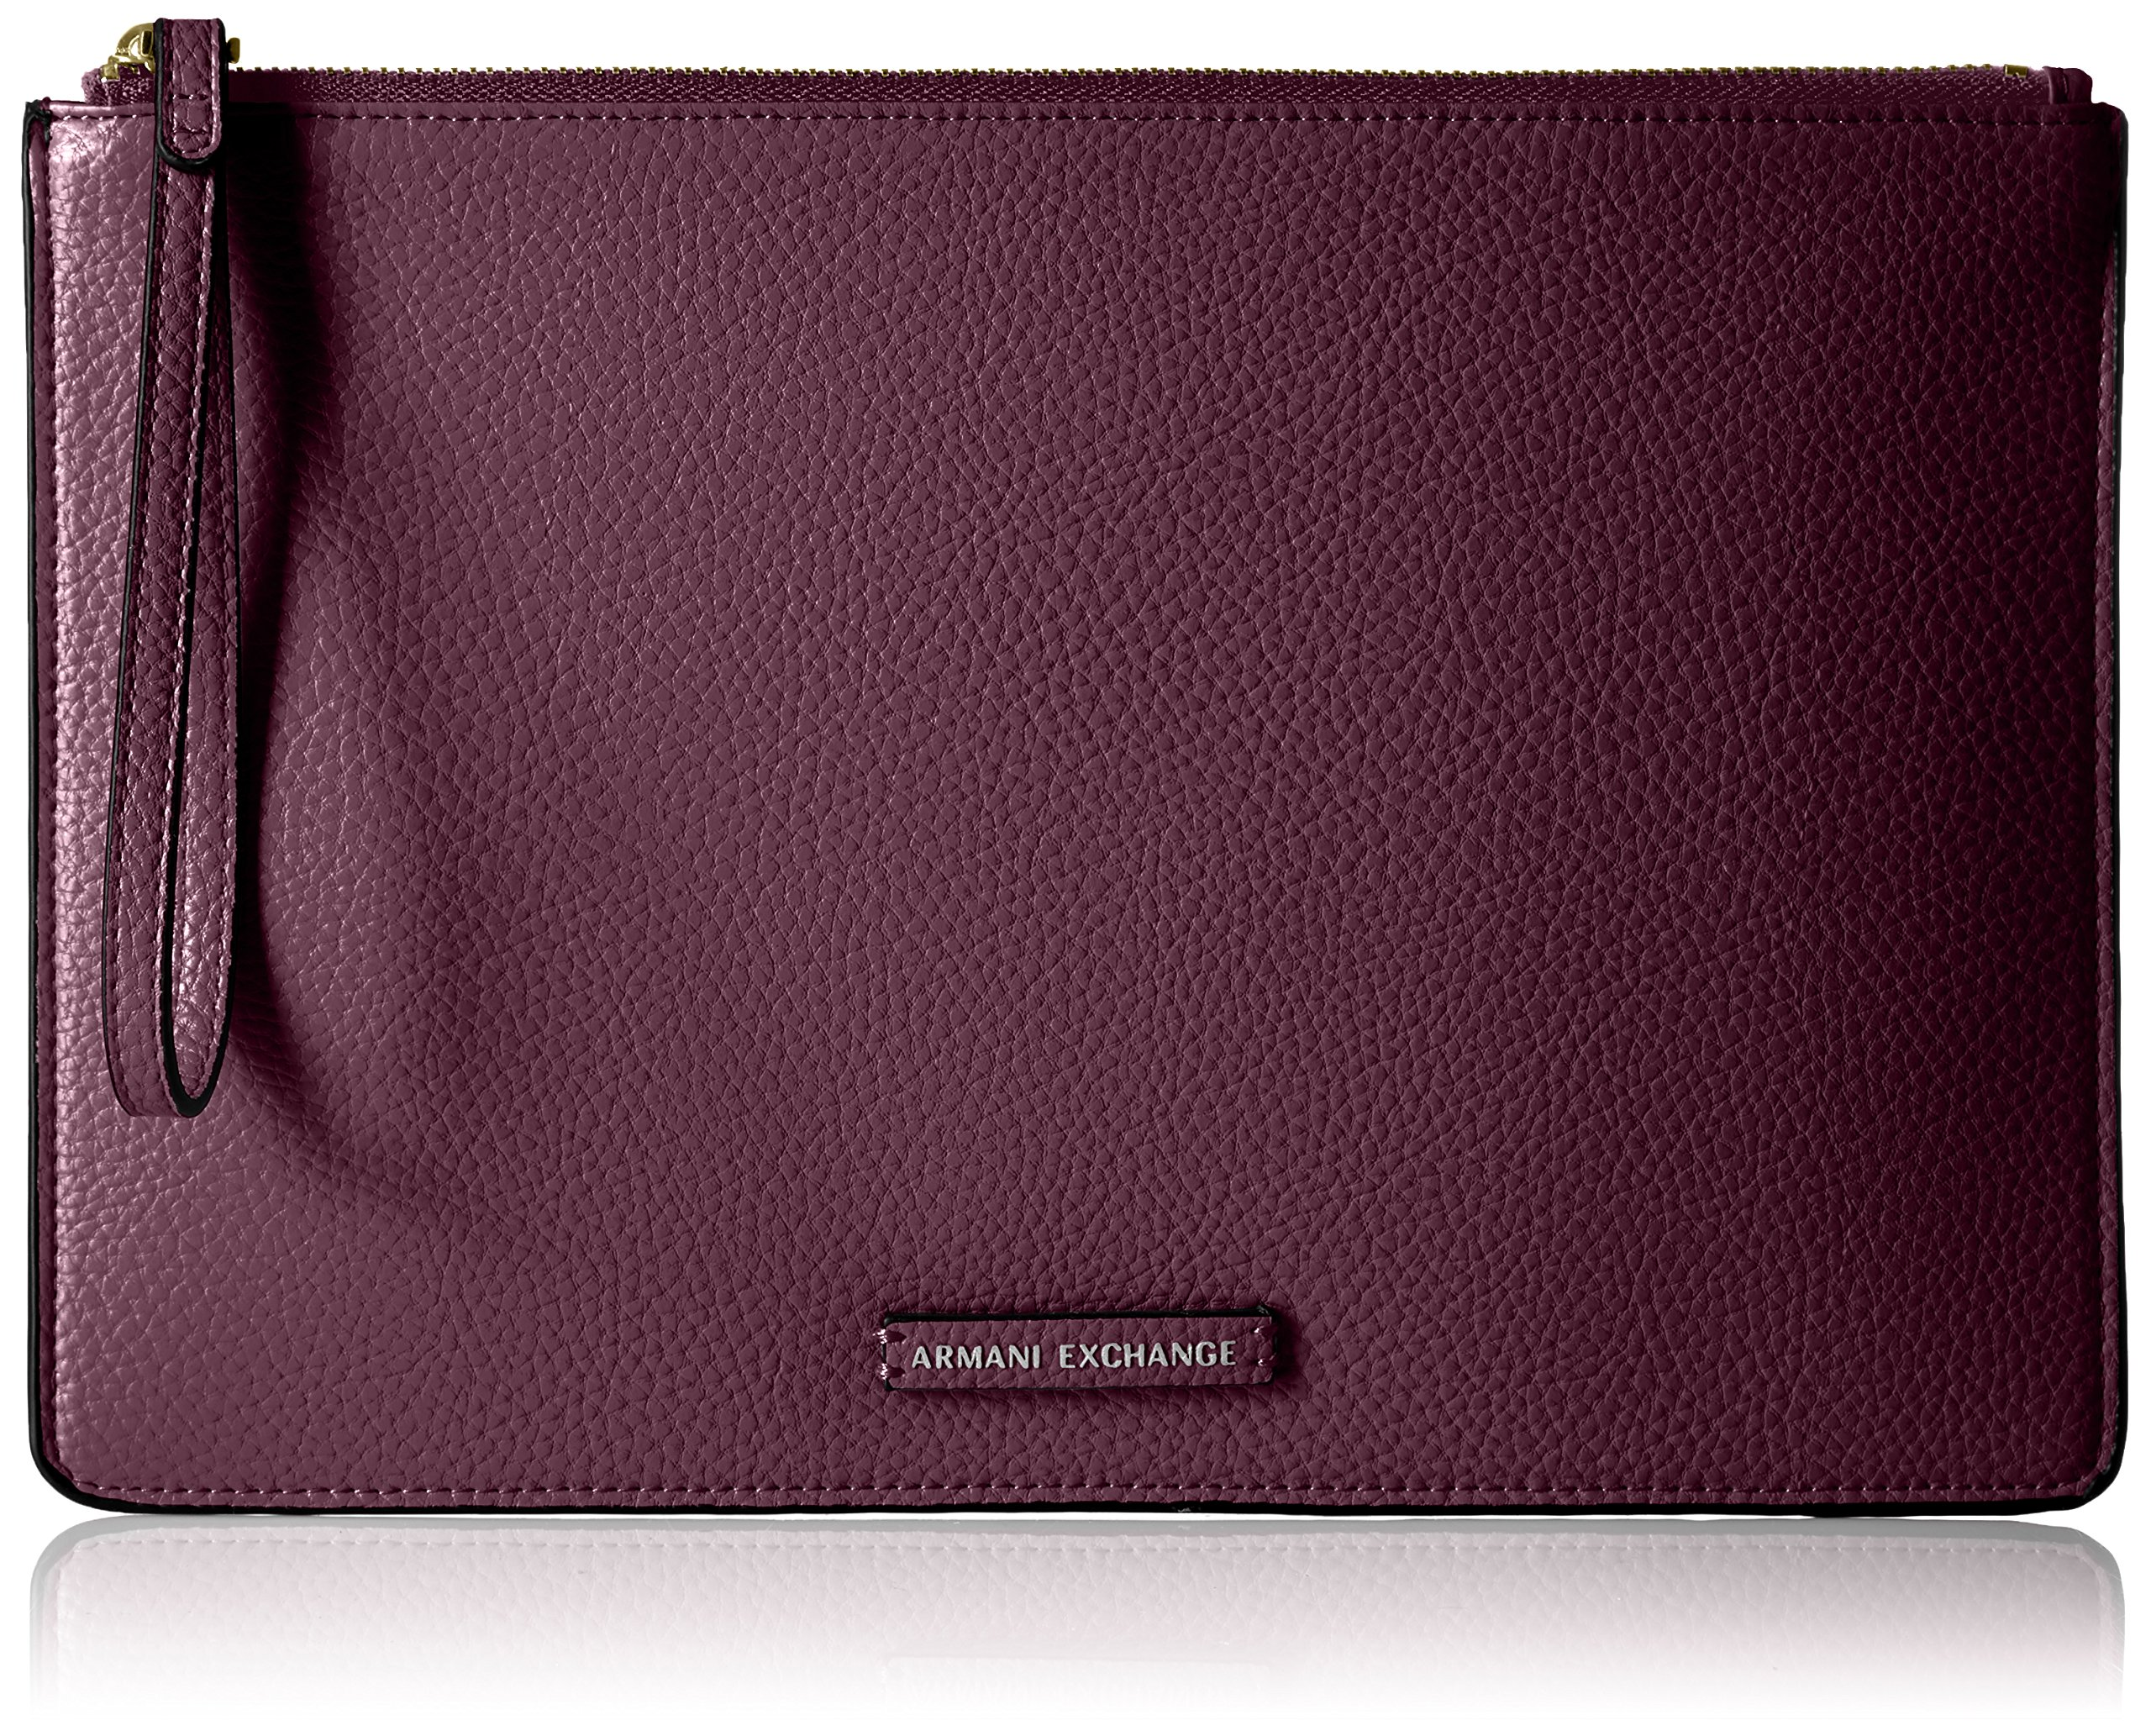 A|X Armani Exchange Pouch, Red